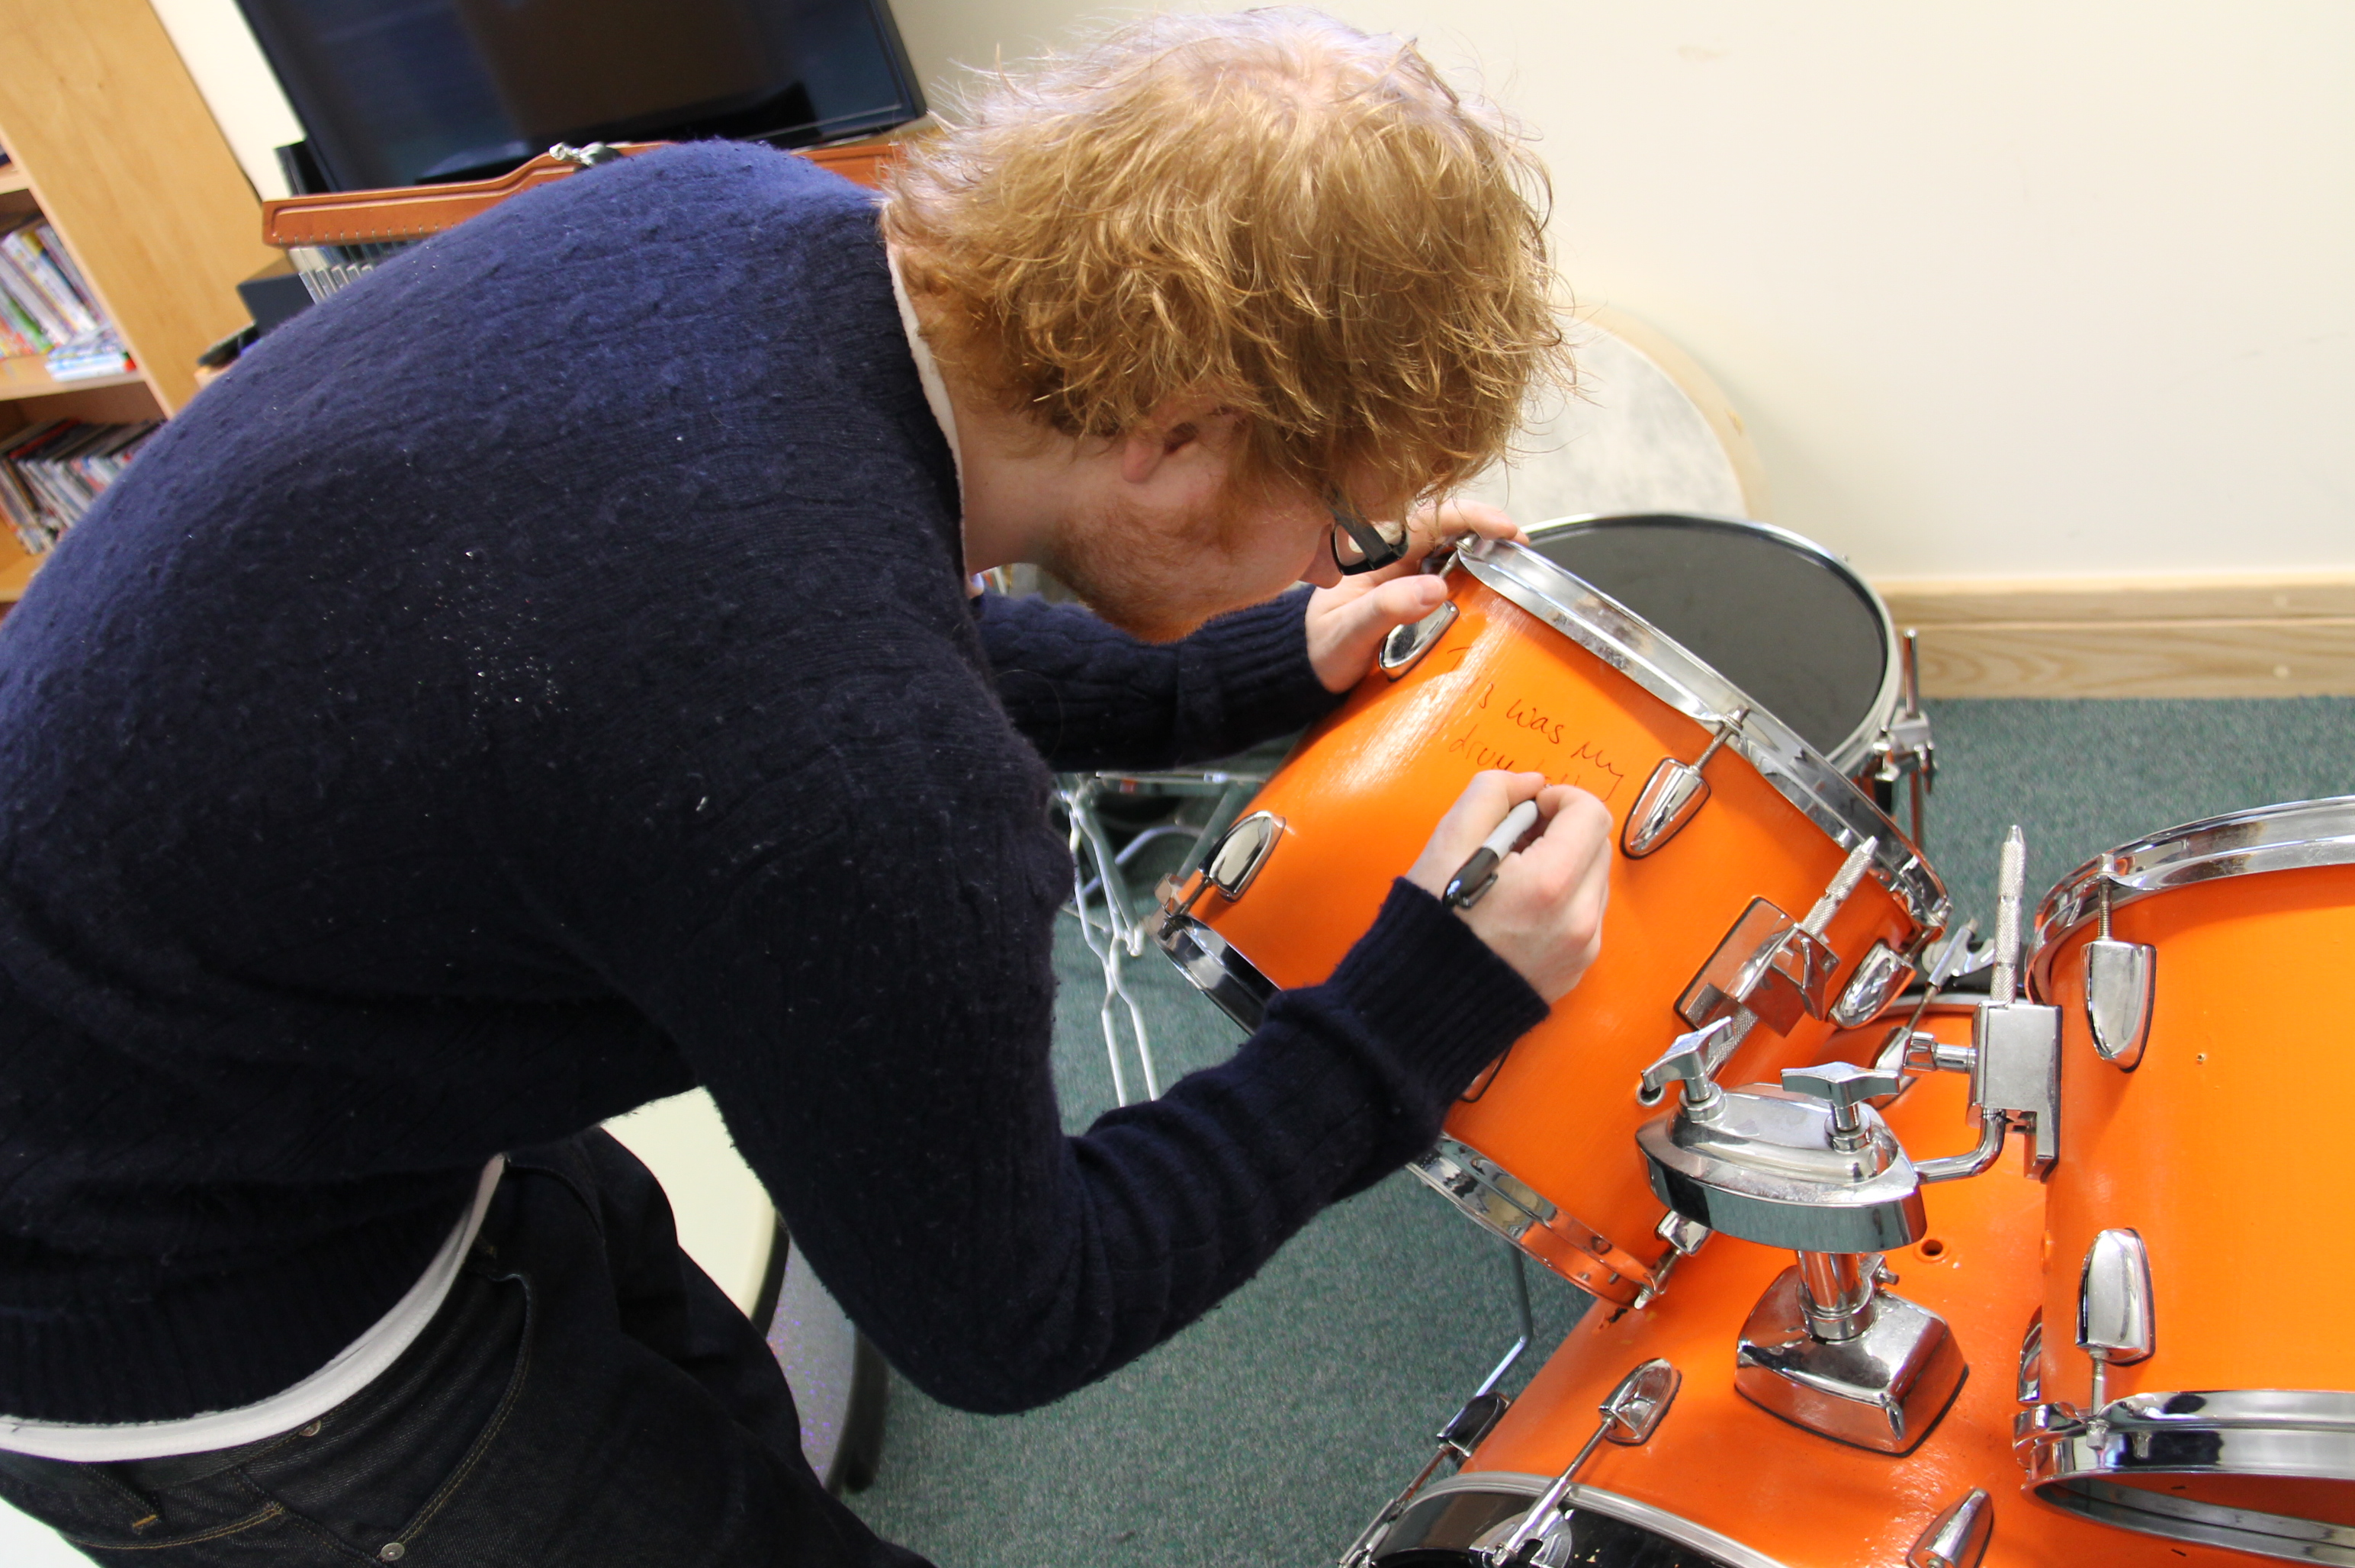 Ed Sheeran's teenage drum kit – own a piece of memorabilia which Ed will sign to the winning bidder